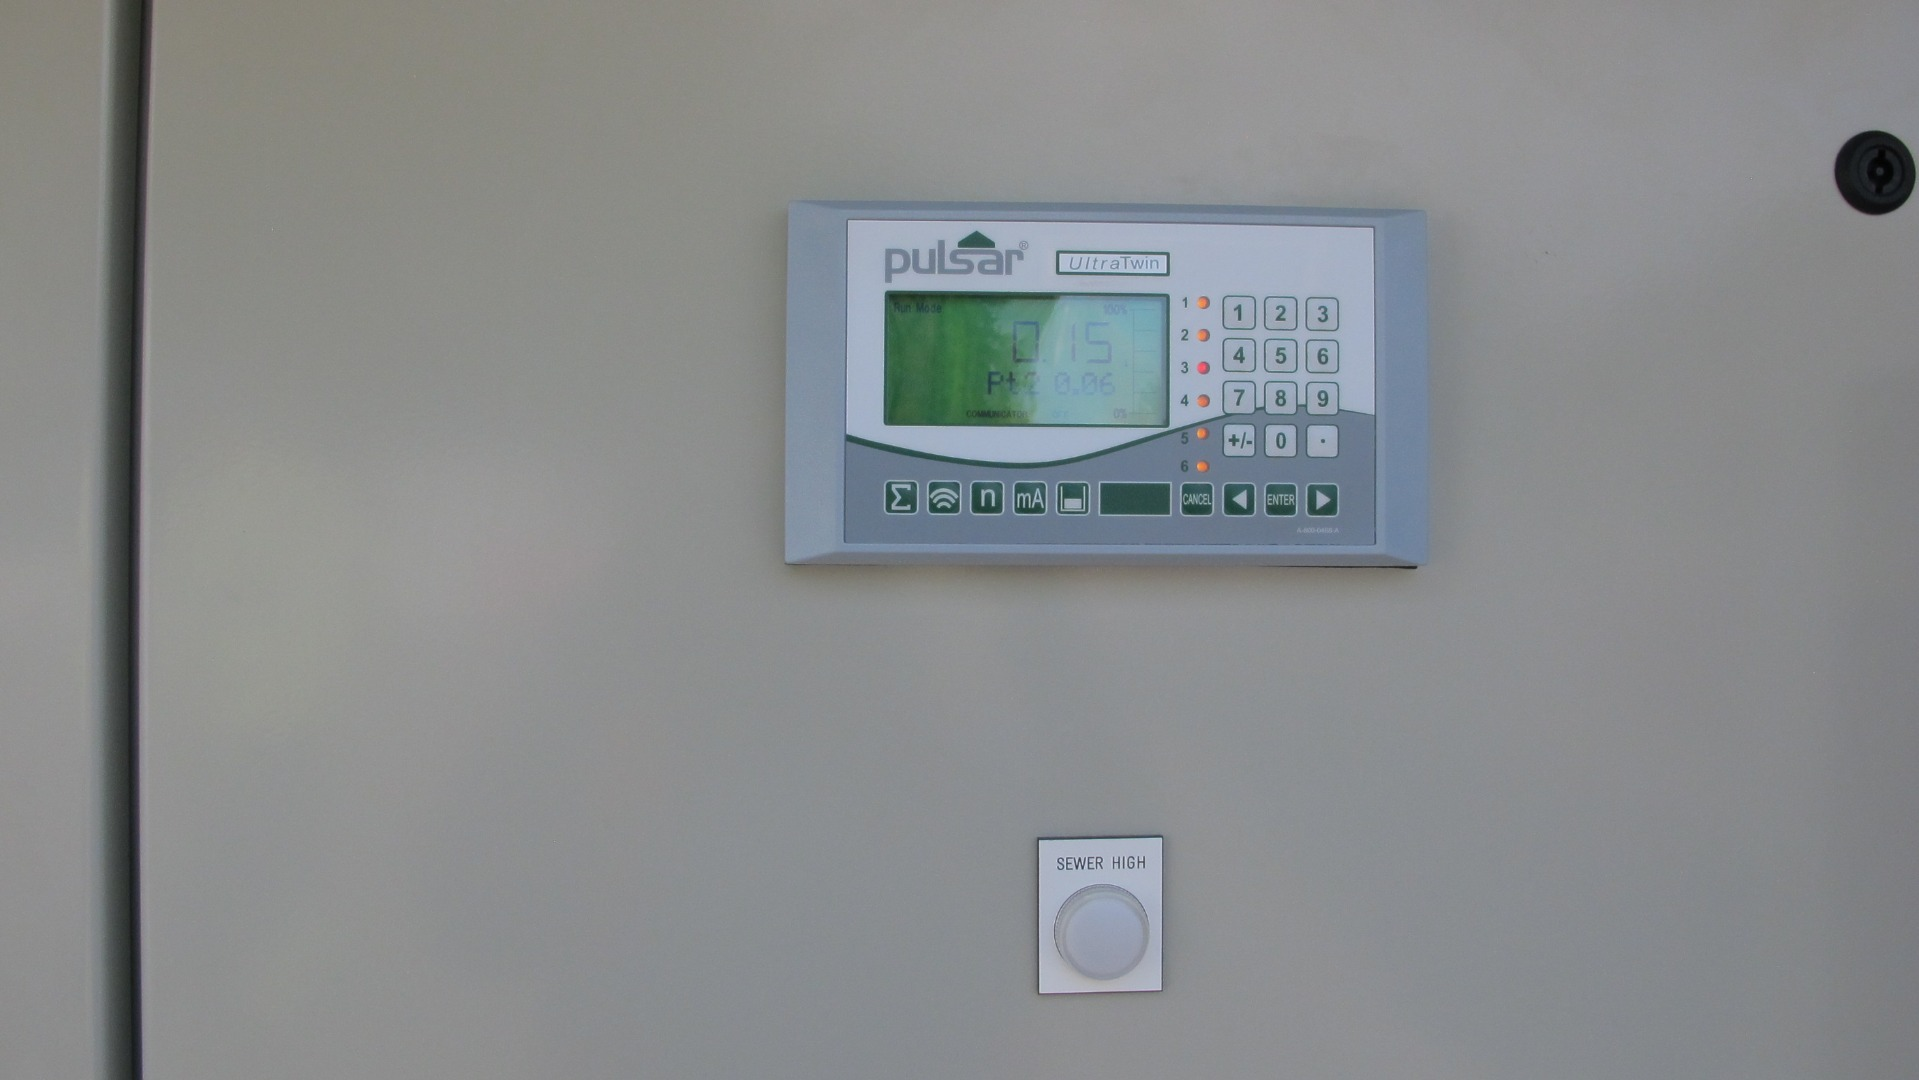 UltraTWIN controller in panel